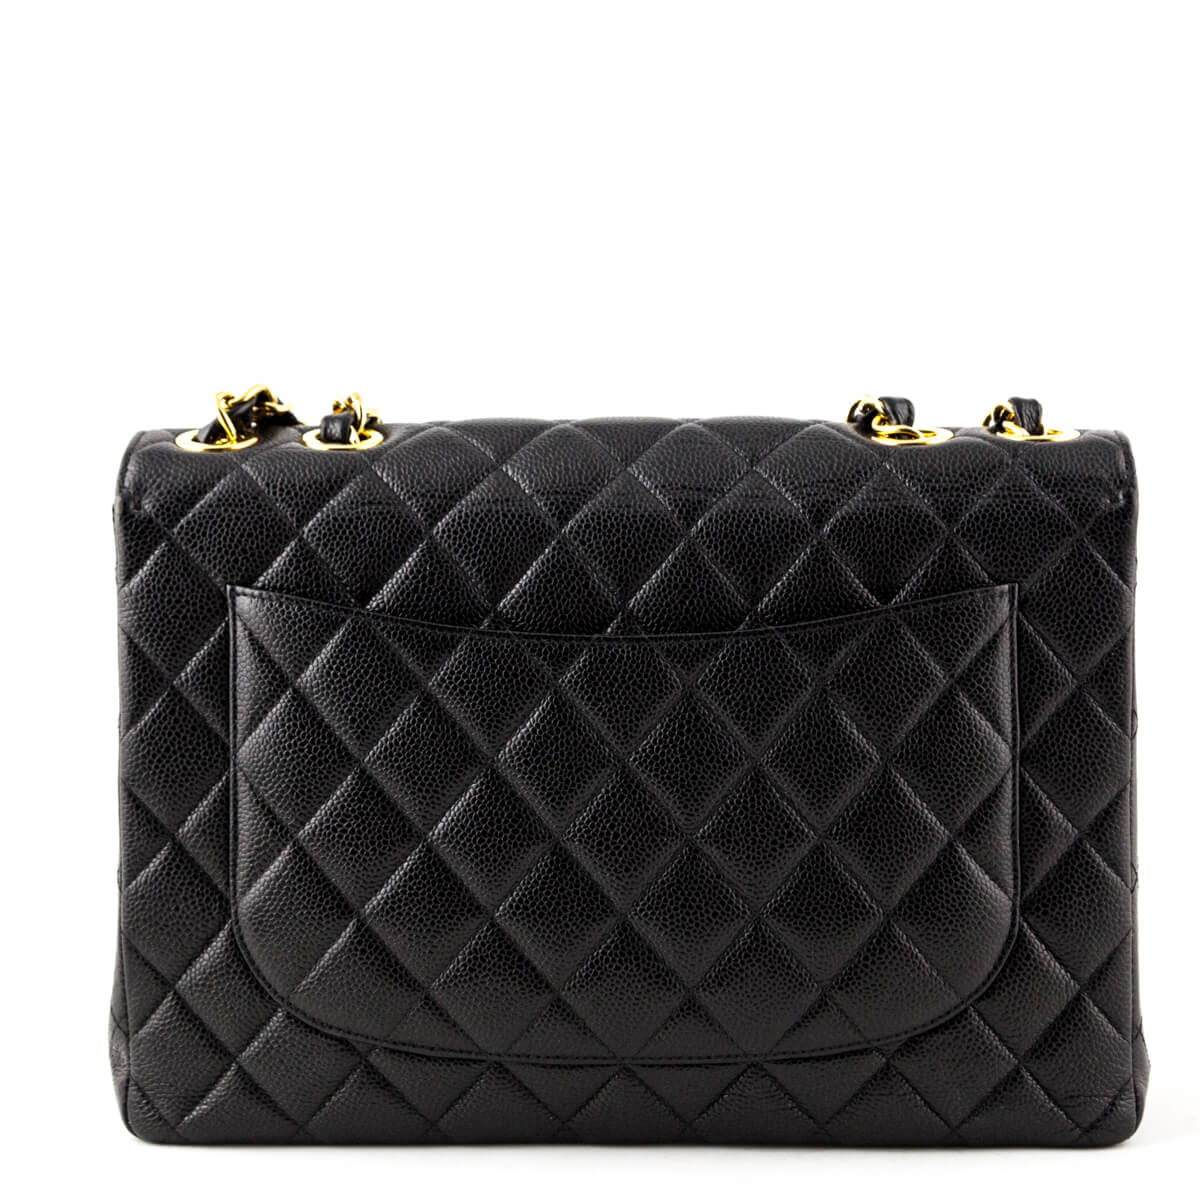 be6b96bef9e ... Chanel Vintage Black Caviar Jumbo Classic Flap Bag - LOVE that BAG -  Preowned Authentic Designer ...